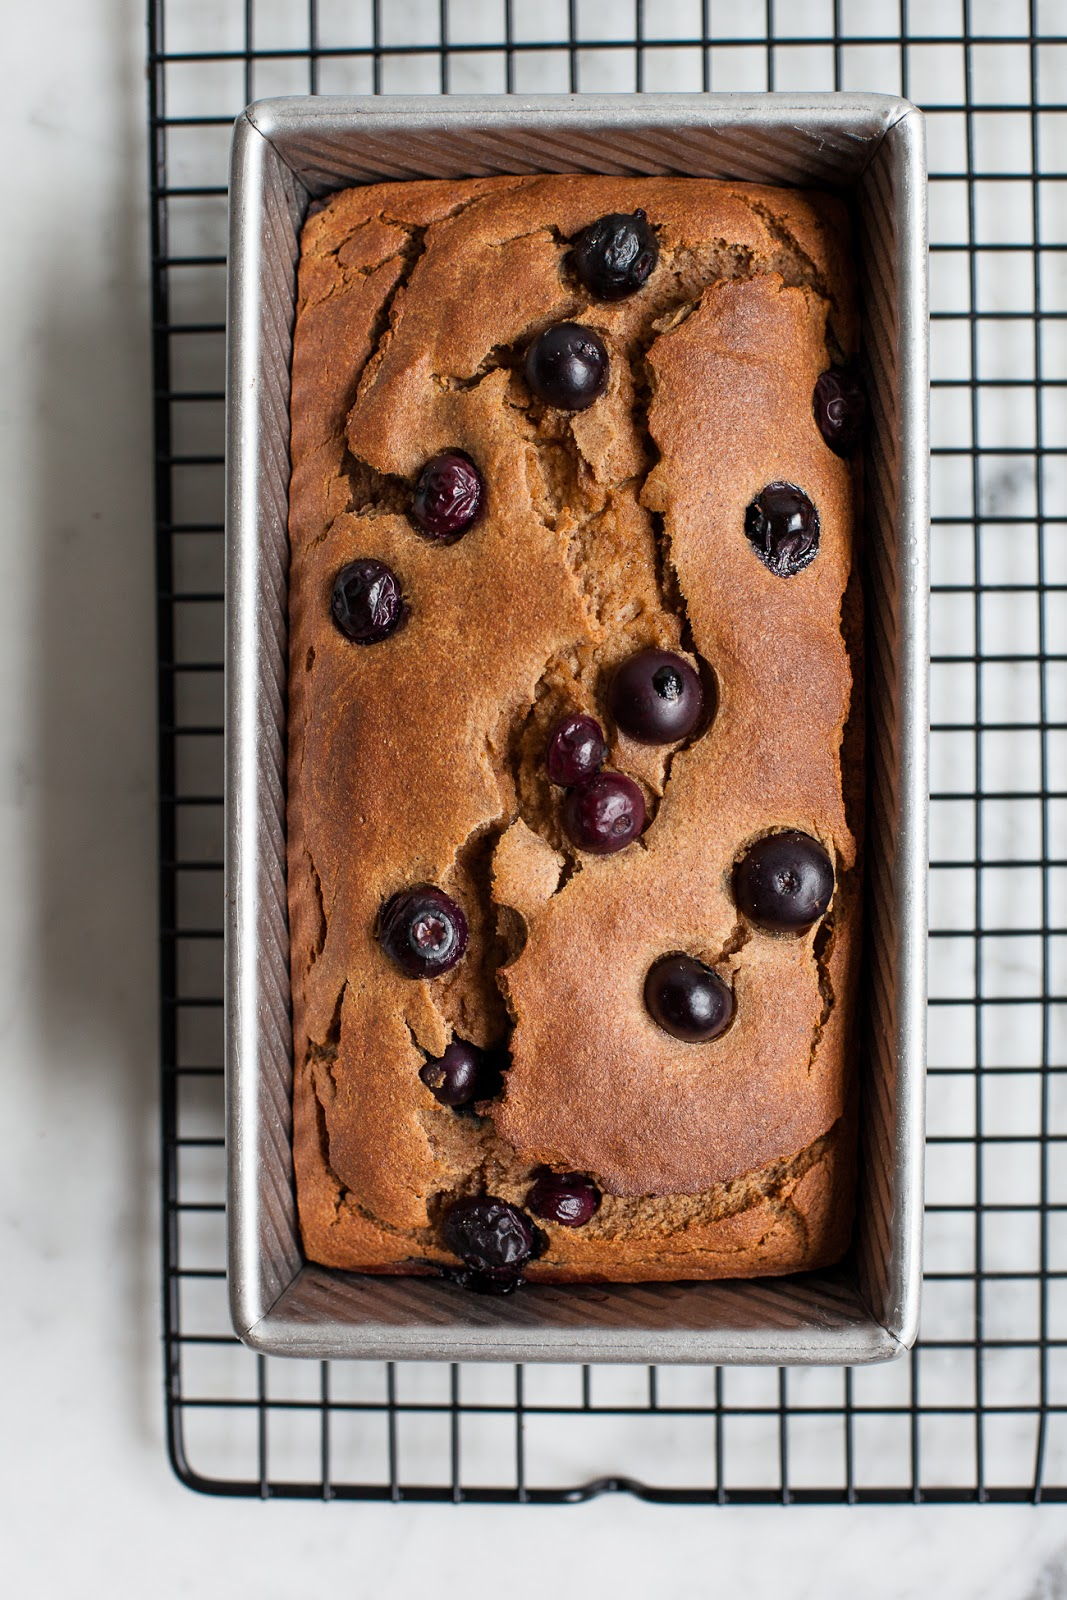 Blueberry Banana Loaf - GF/Paleo / blog.jchongstudio.com